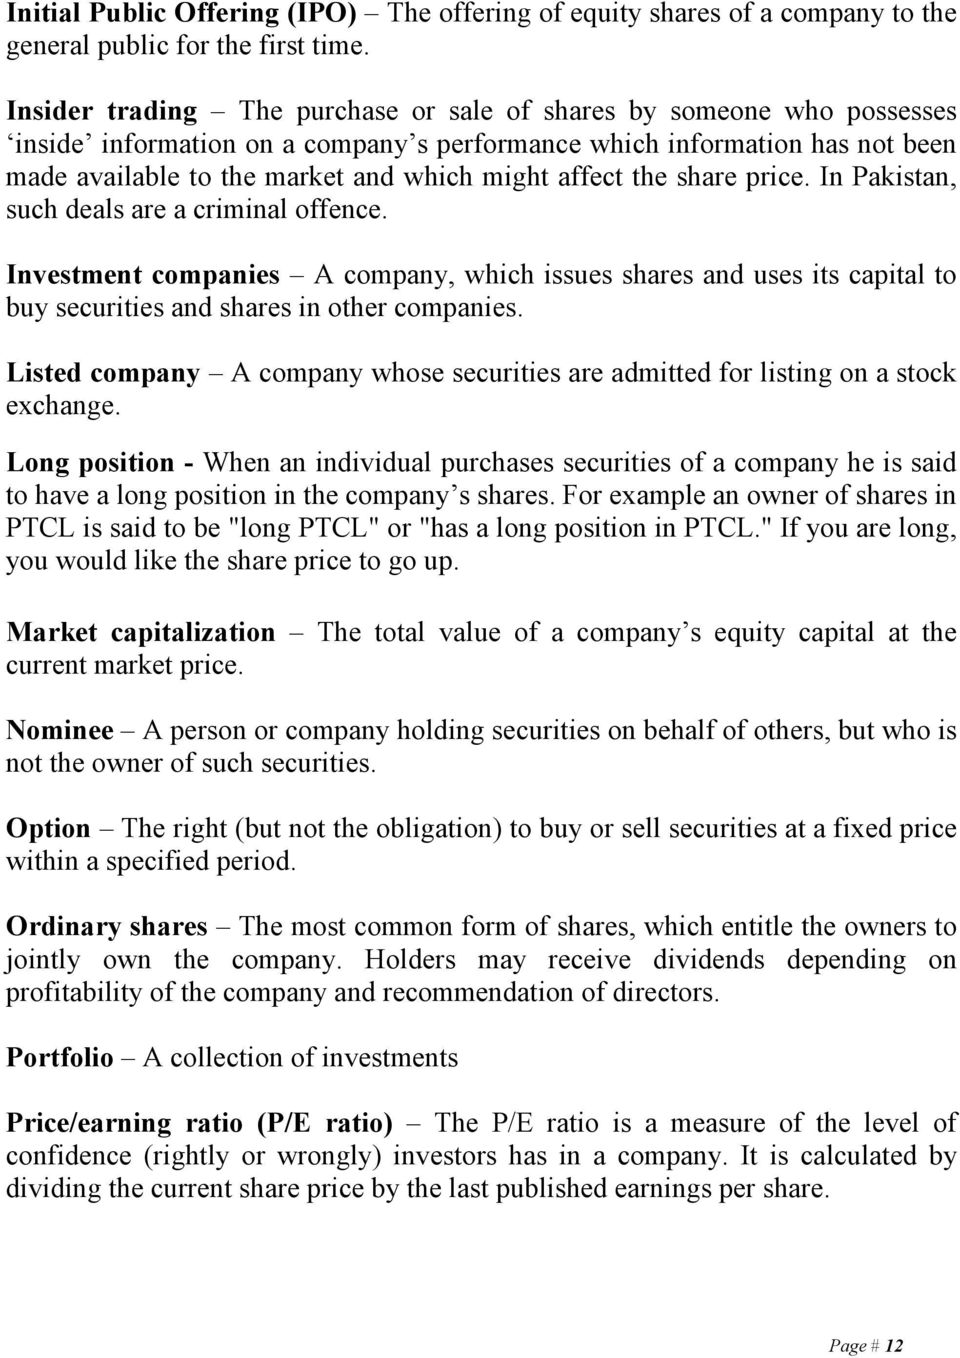 affect the share price. In Pakistan, such deals are a criminal offence. Investment companies A company, which issues shares and uses its capital to buy securities and shares in other companies.